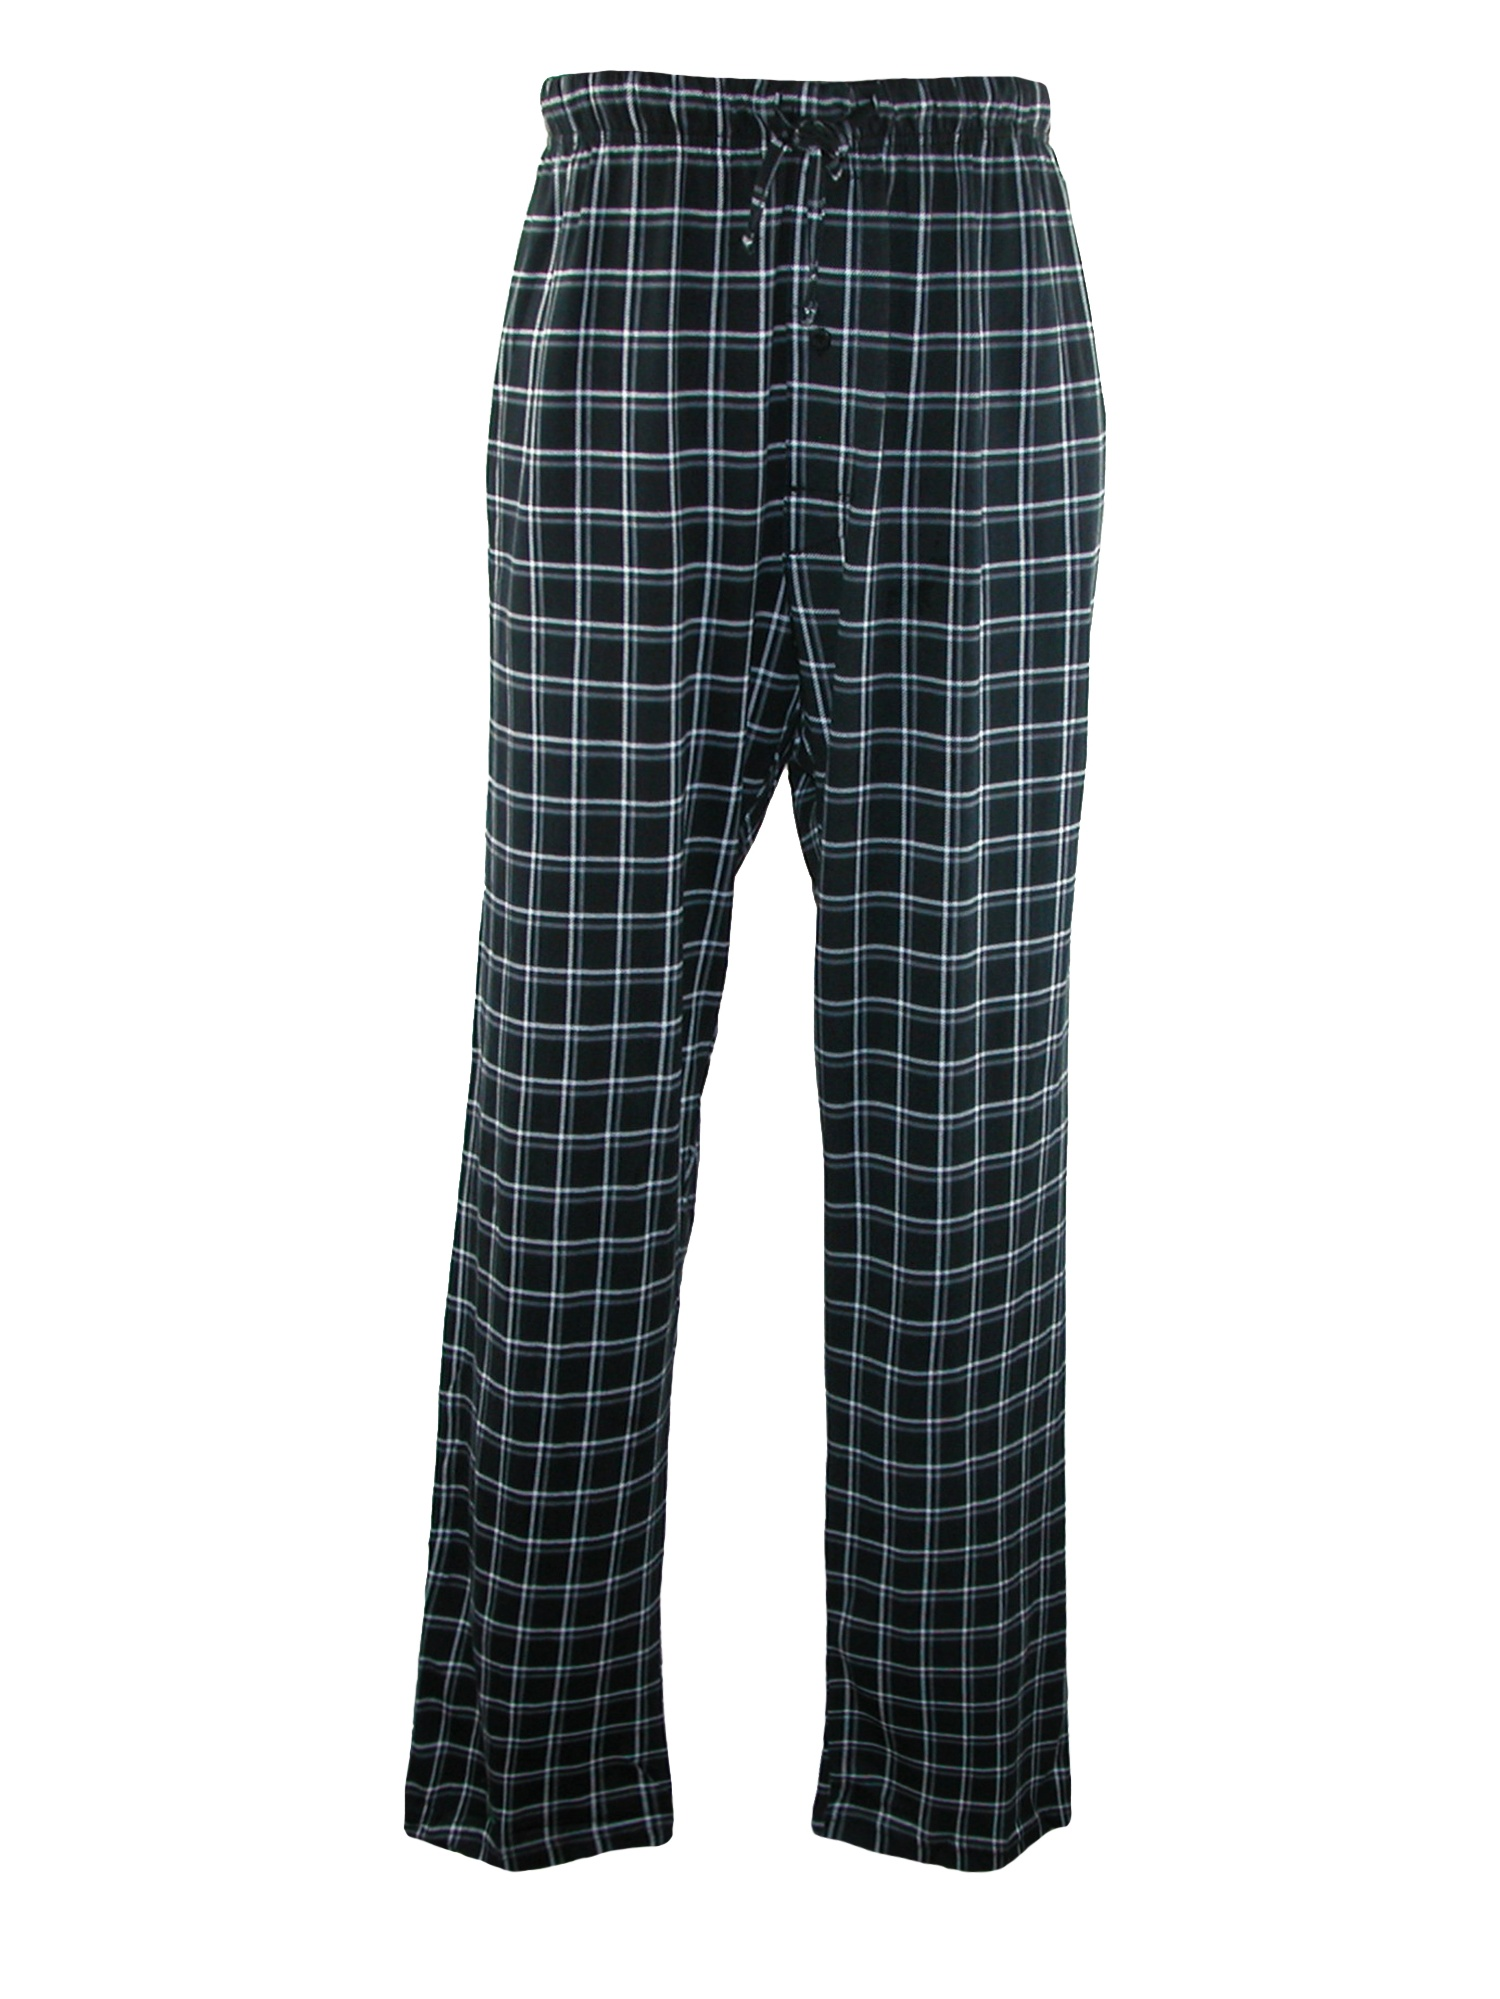 Men's Big & Tall Cotton ComfortSoft Printed Knit Pants,  Midnight